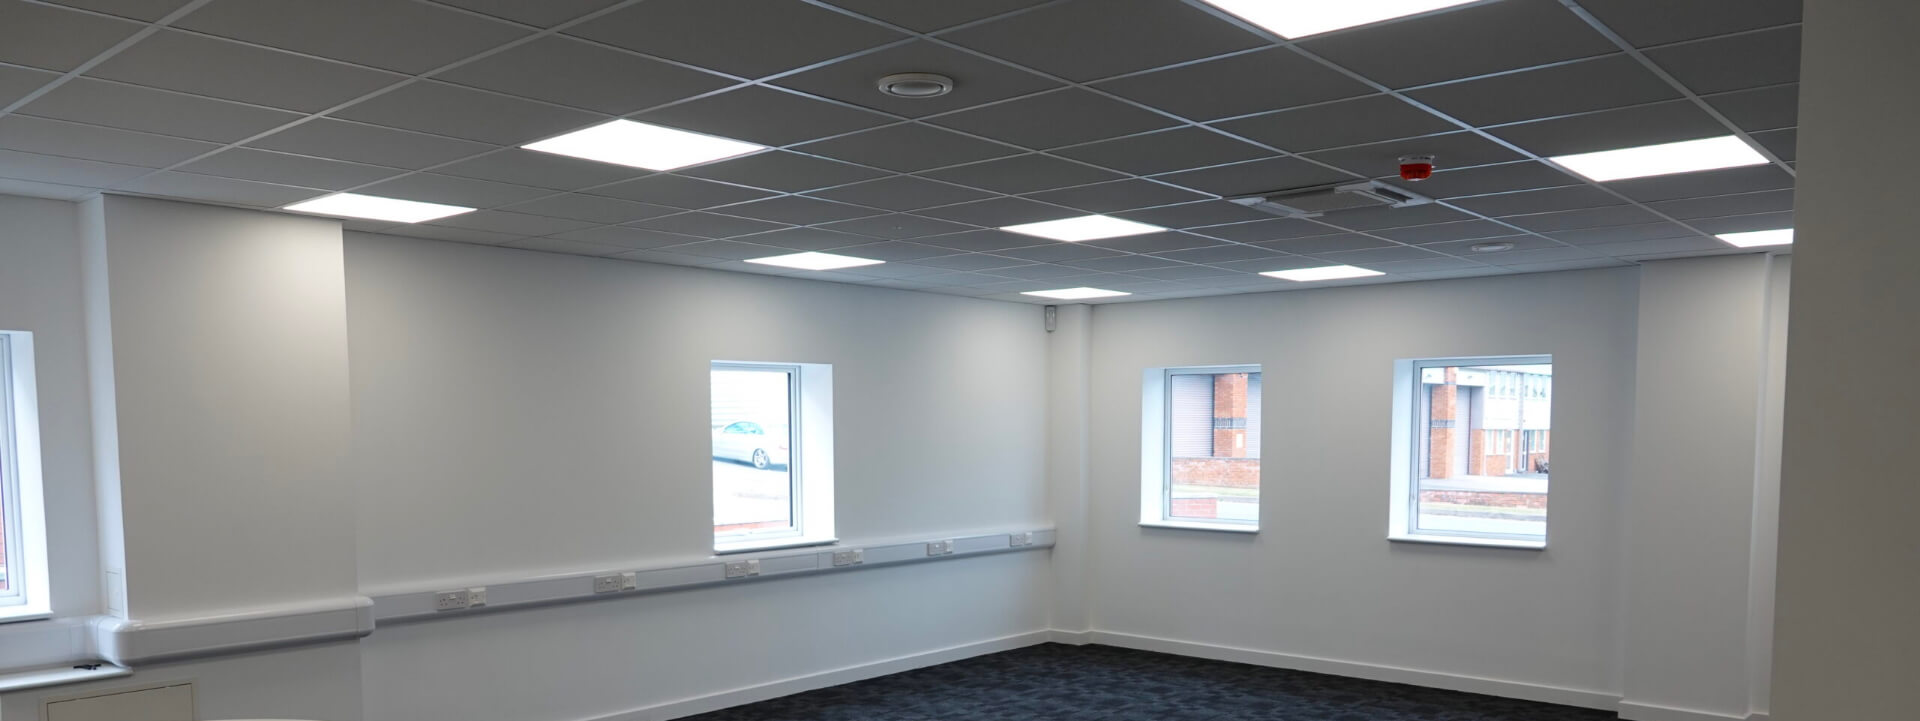 Suspended ceiling in an empty office